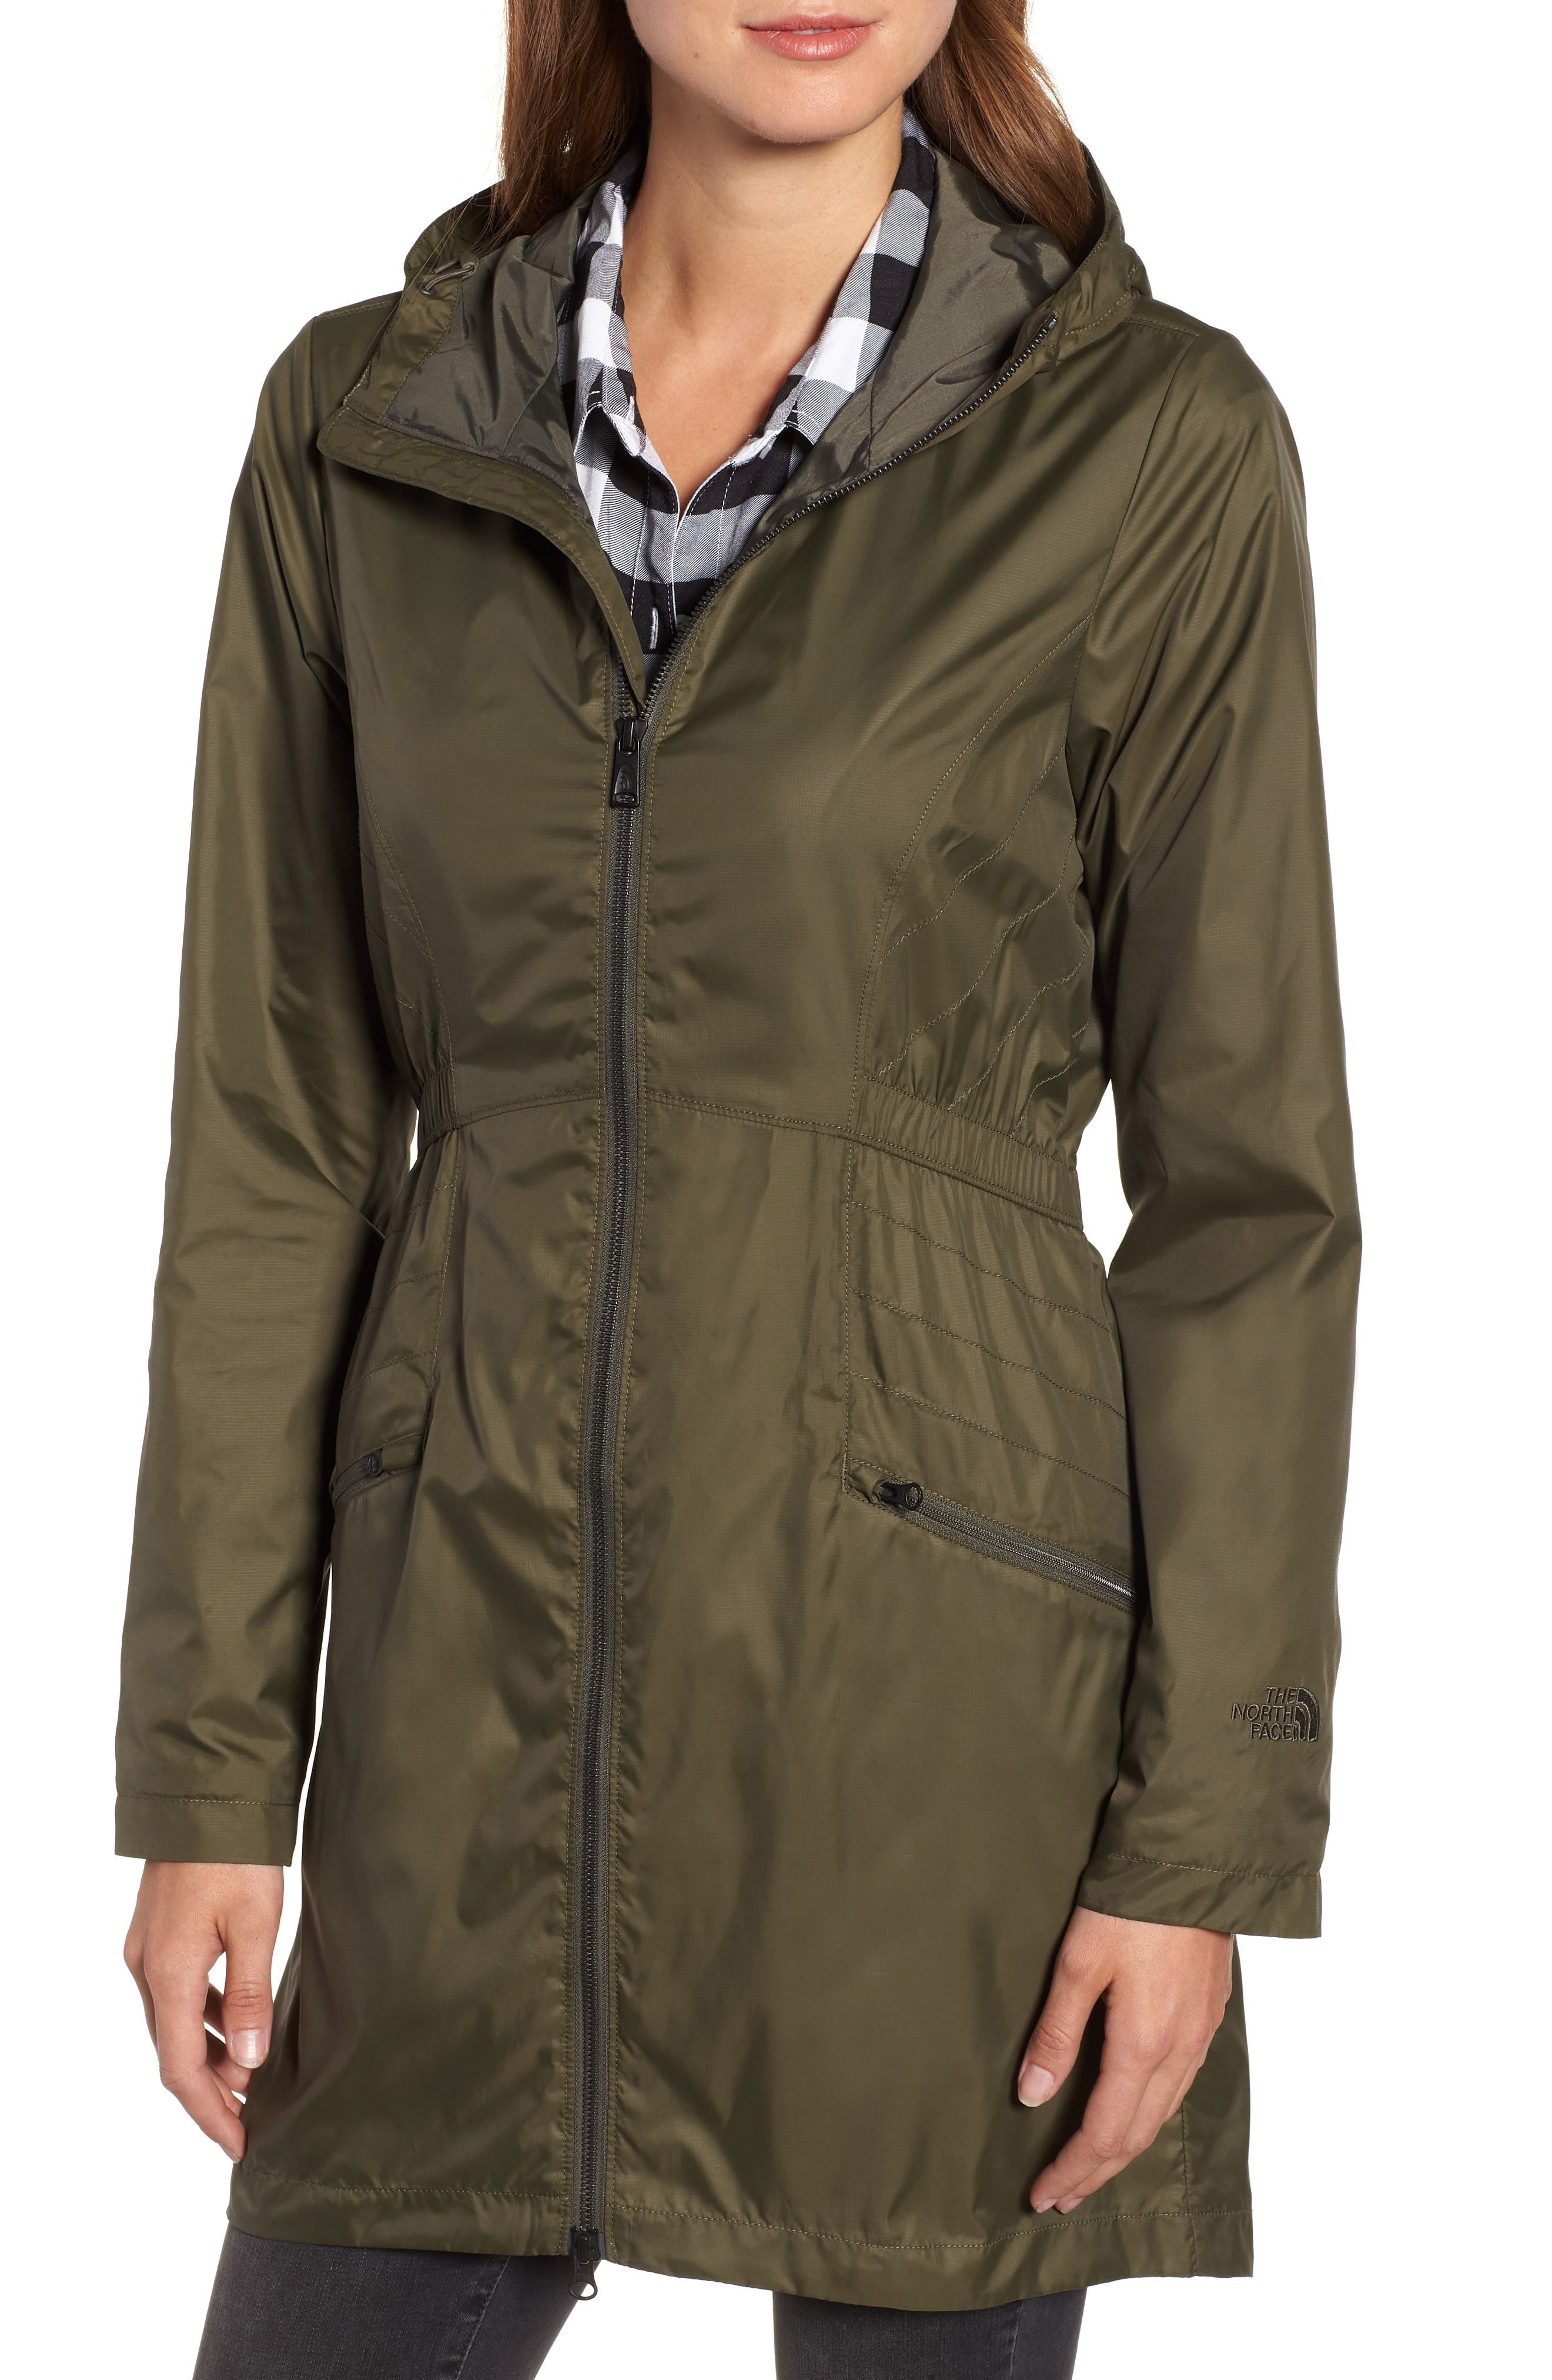 THE NORTH FACE, Rissy 2 Wind Resistant Jacket, Alternate thumbnail 5, color, 302